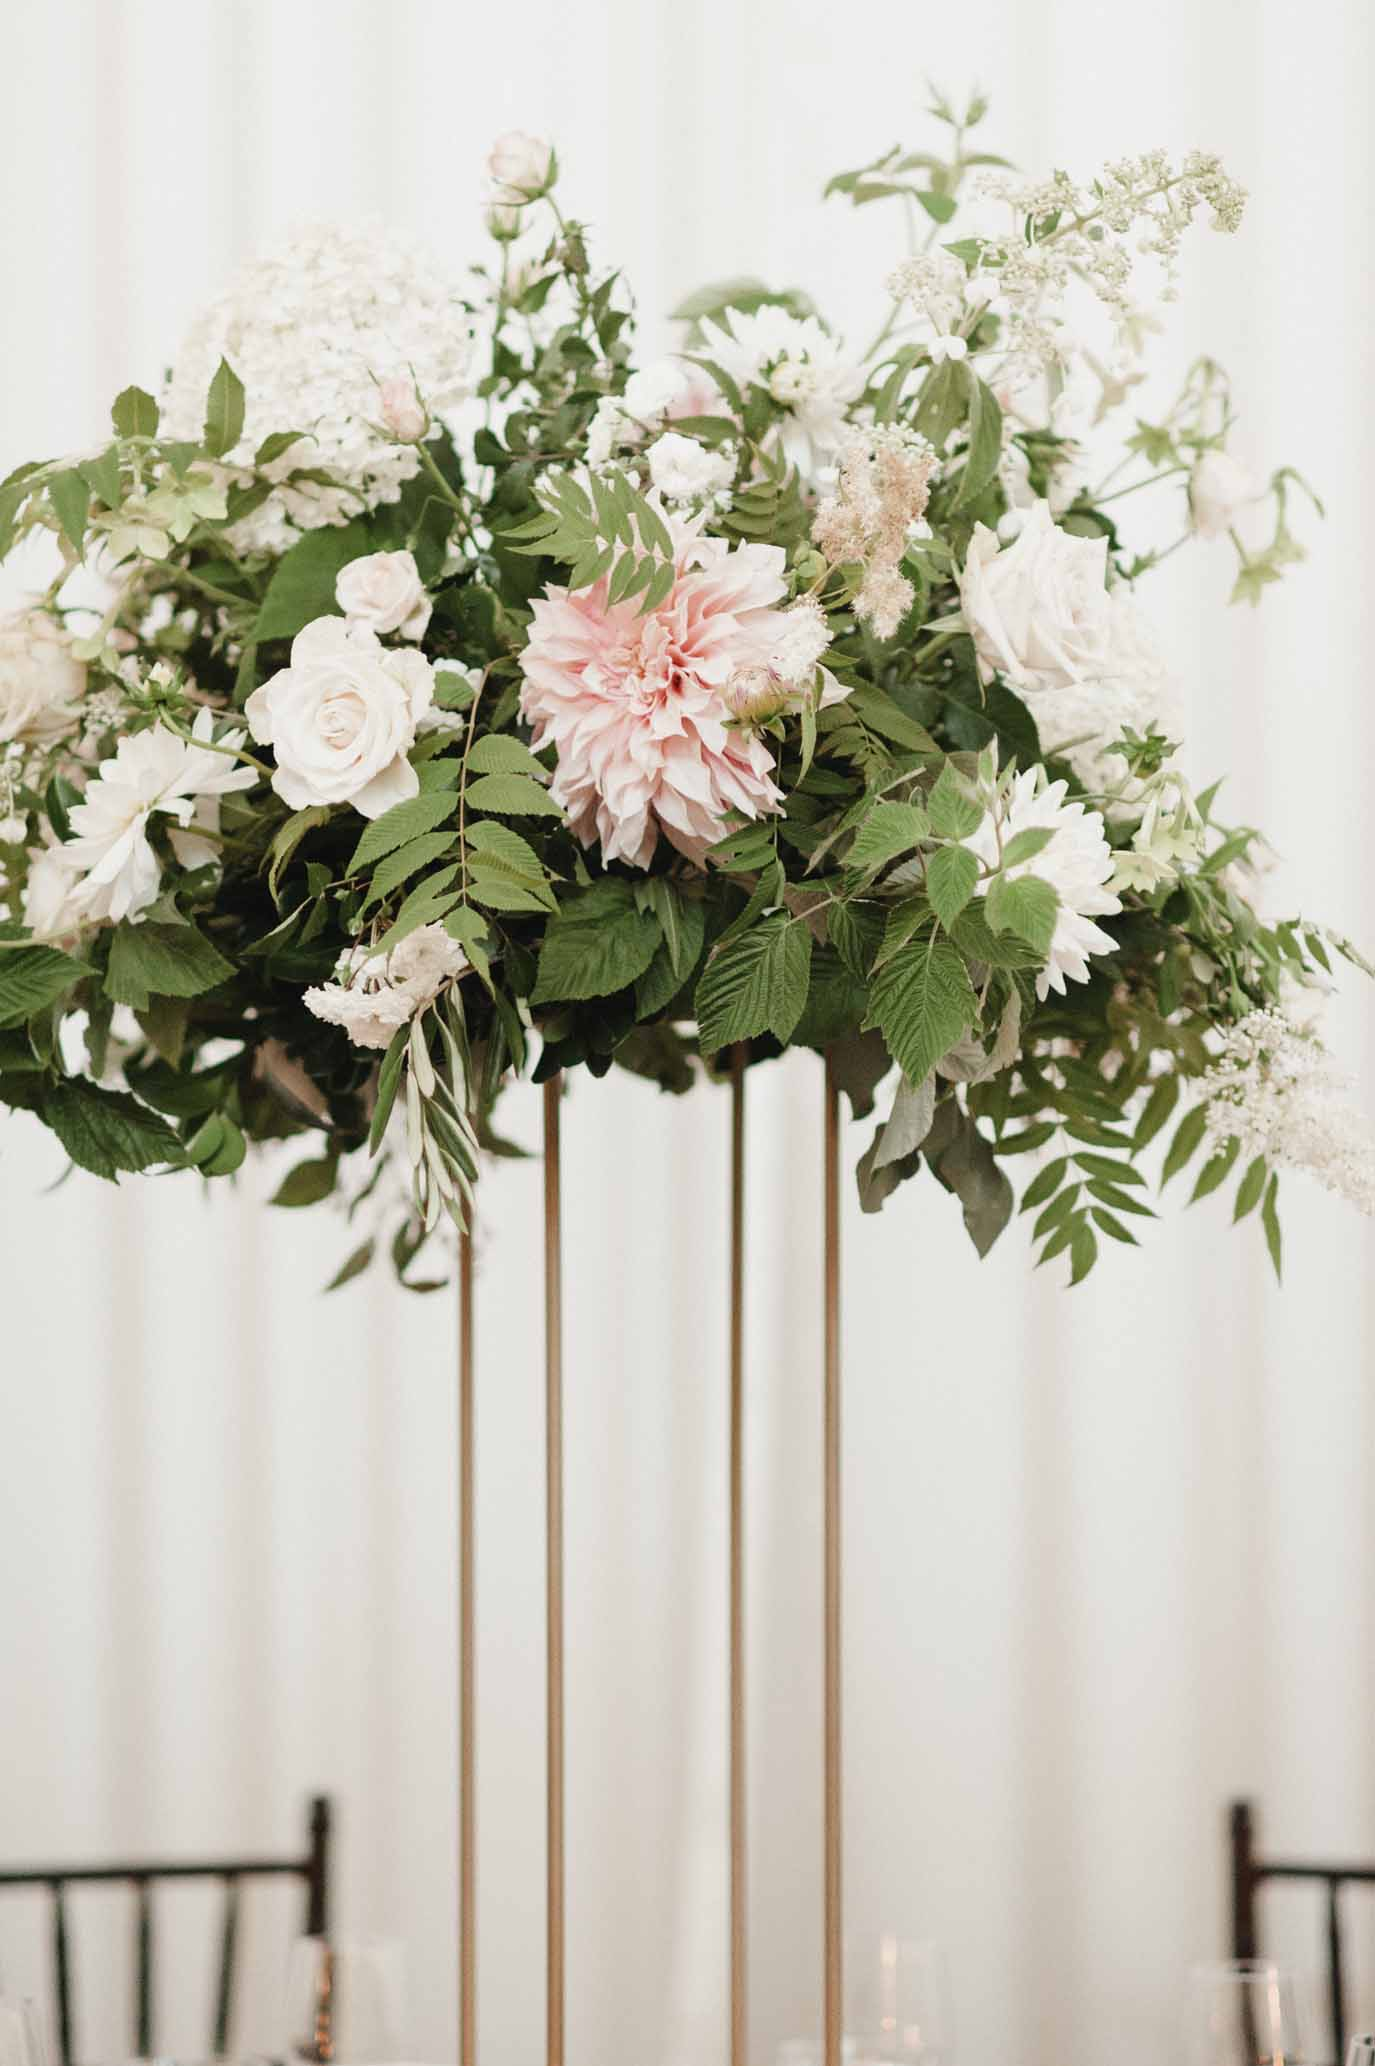 Floral centerpiece with lots of greenery, peach dahlias, white stock, and cream roses - by design company Flora Nova Design in Seattle